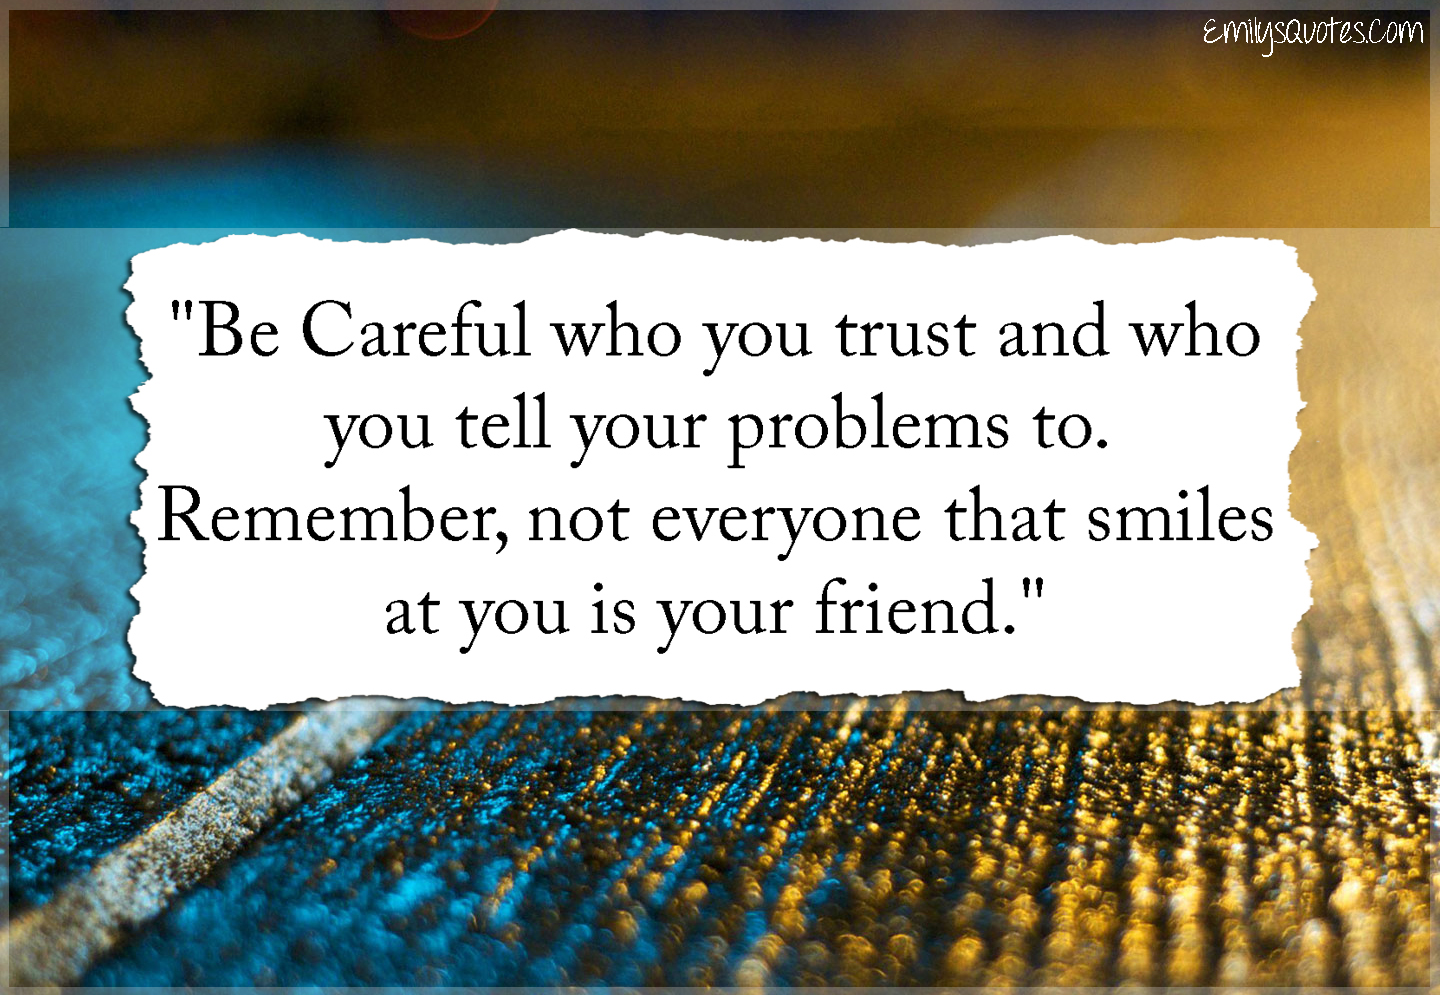 Quotes About Smile And Friendship Be Careful Who You Trust And Who You Tell Your Problems To